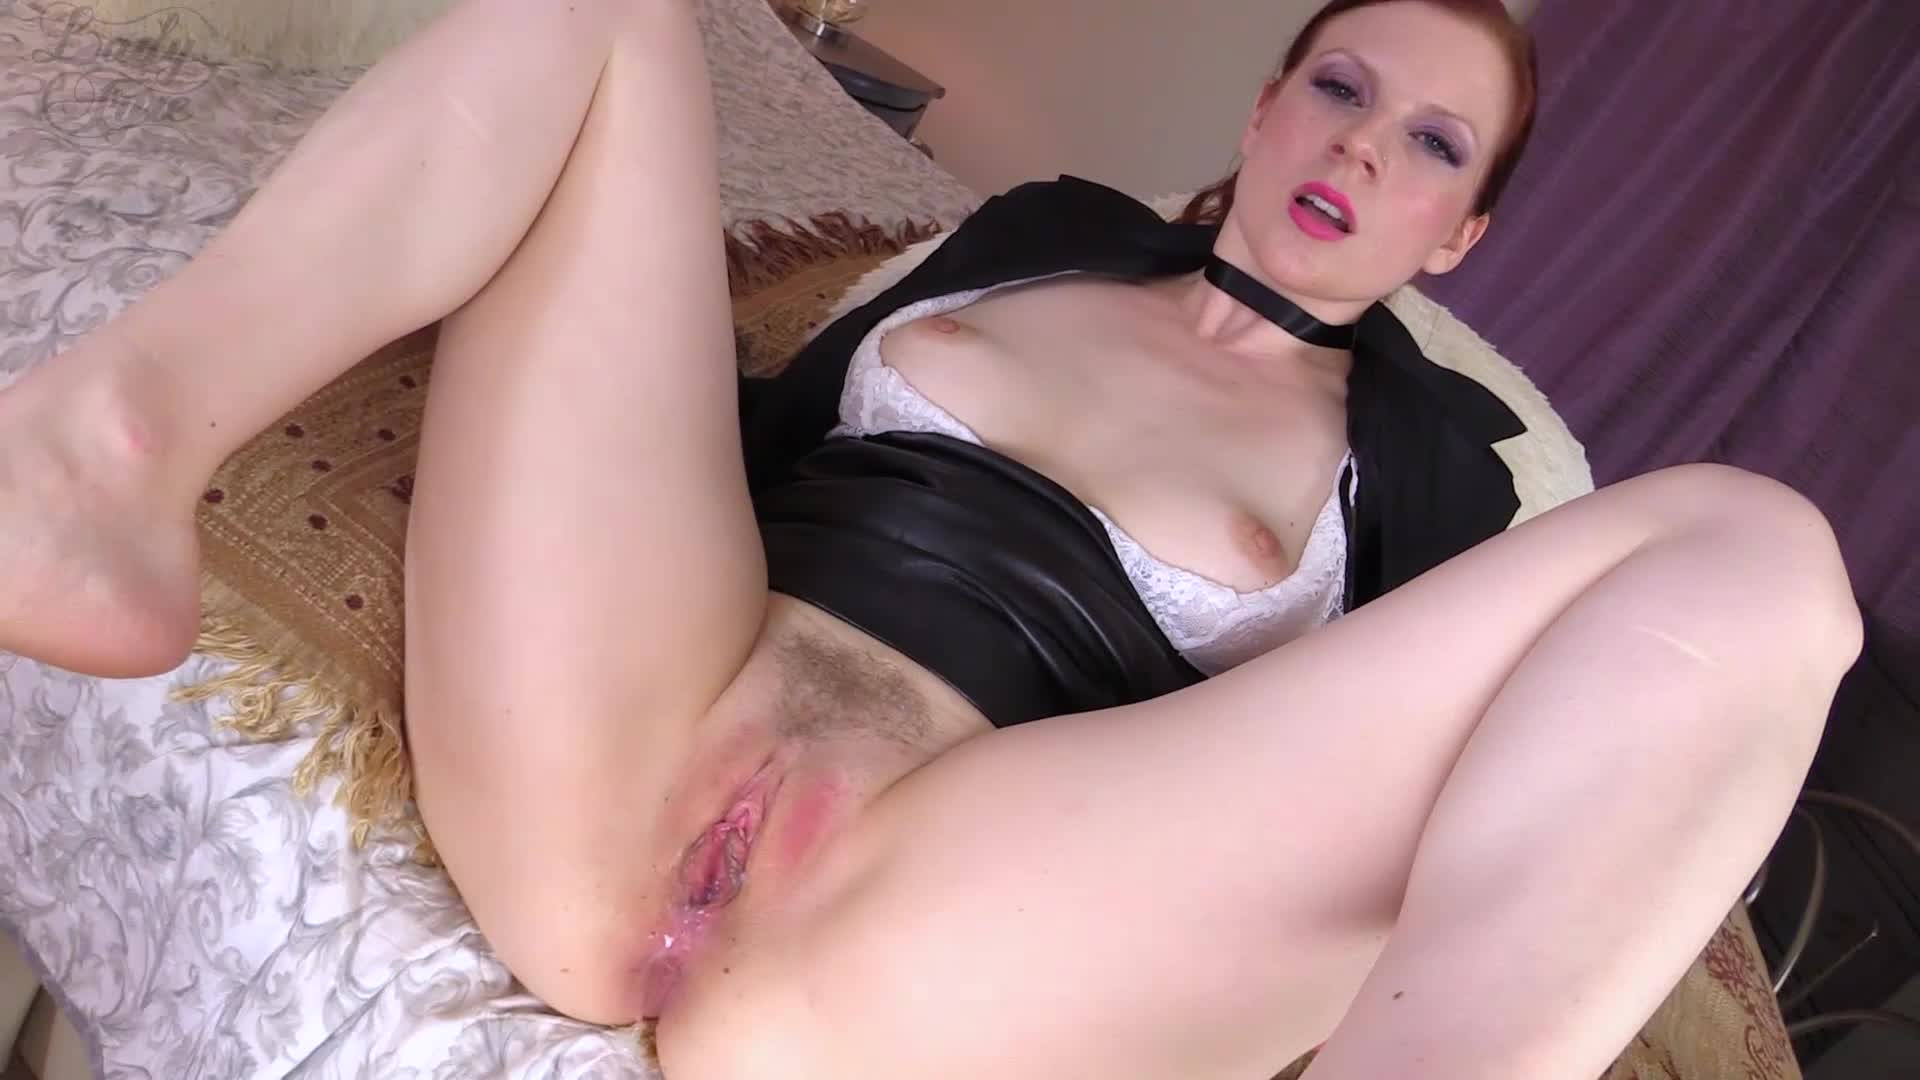 Licking My Own Pussy Squirt